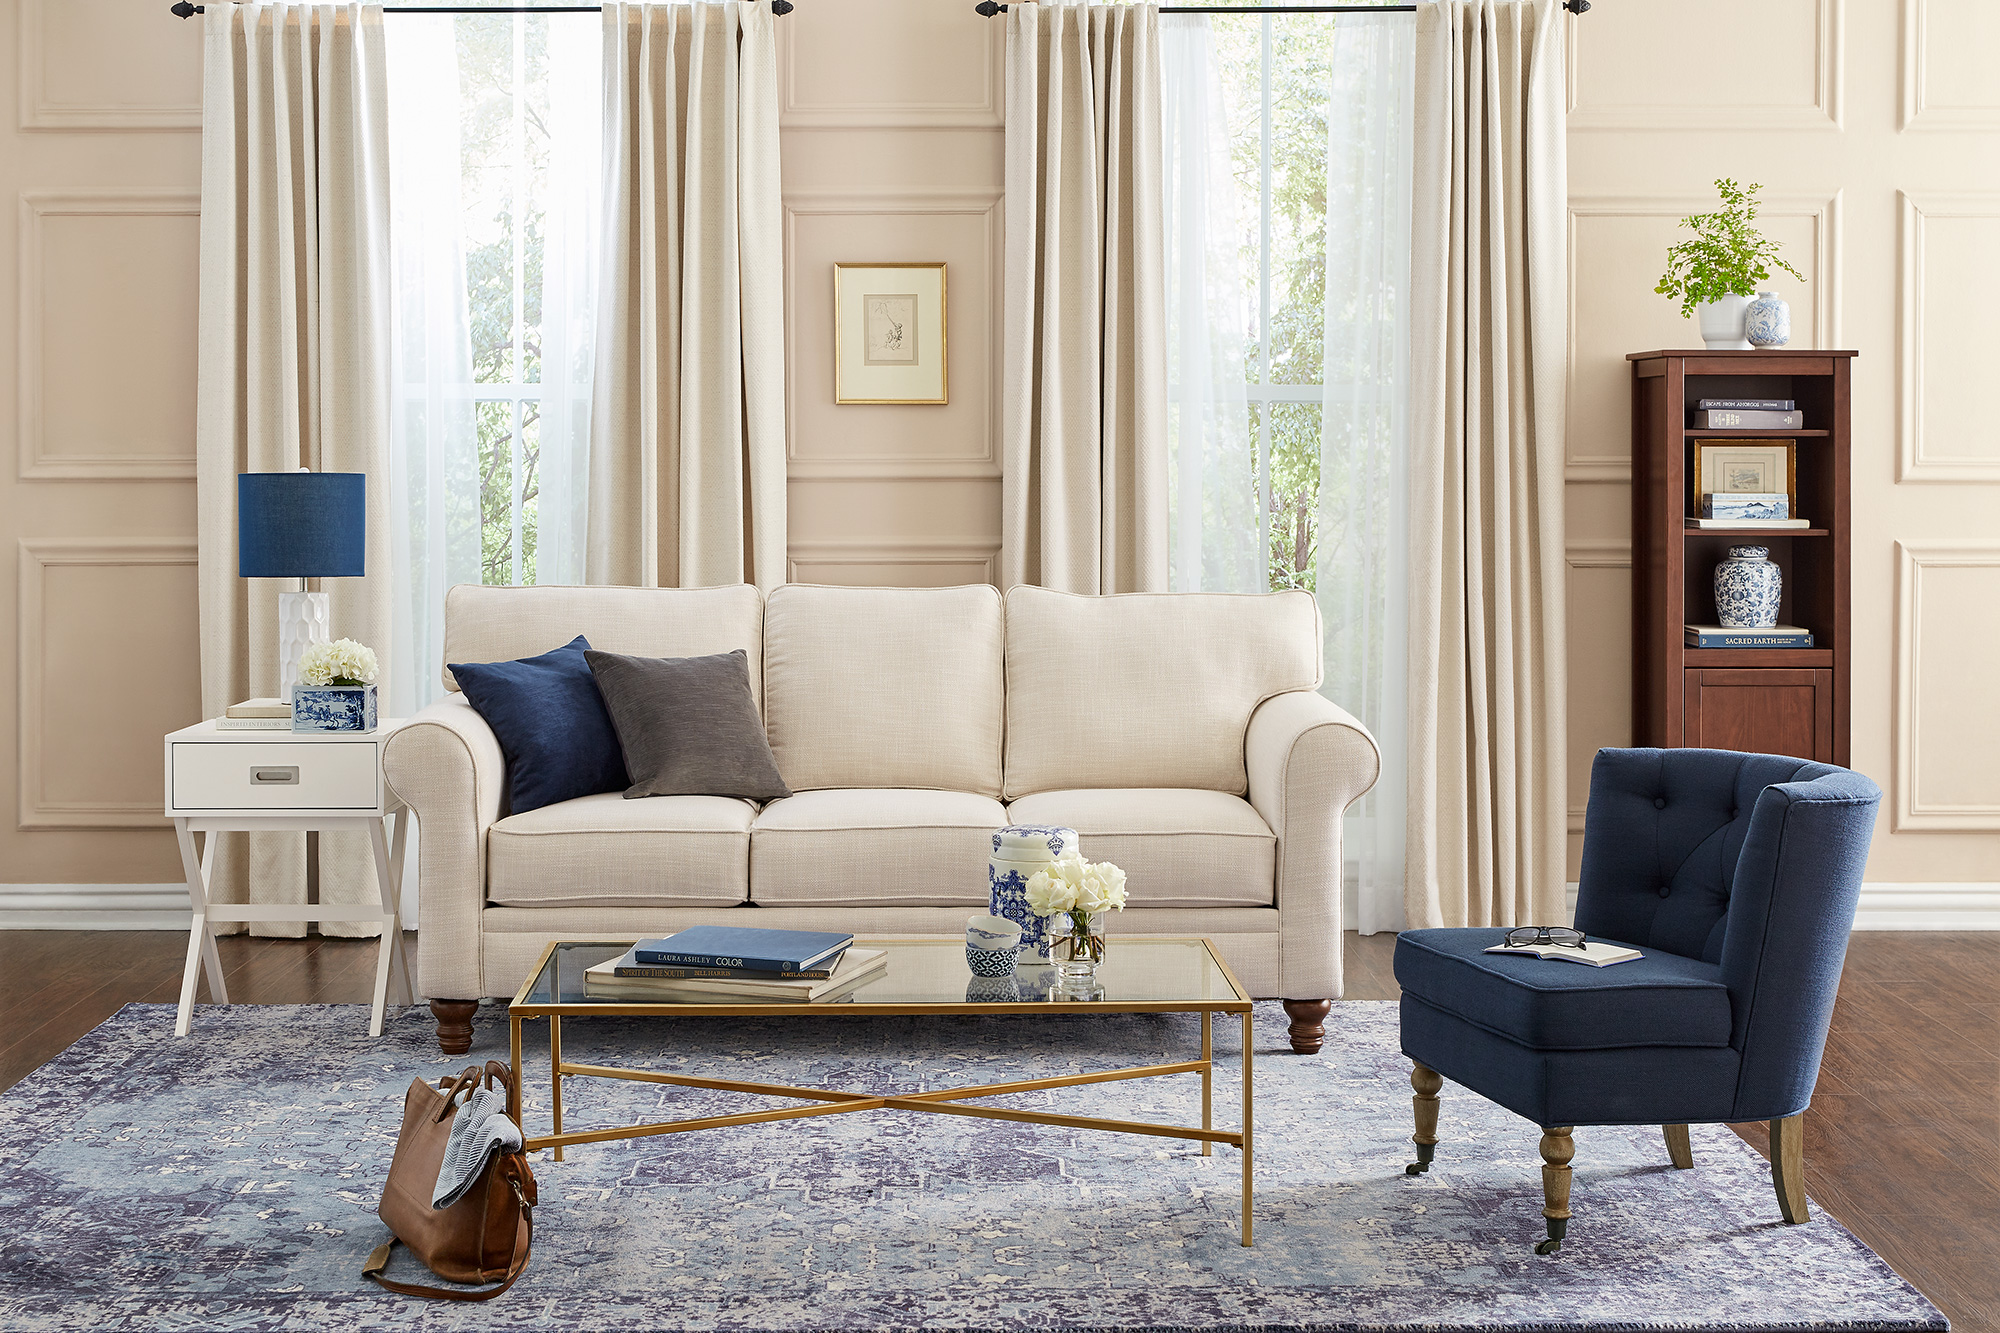 hot bargains off corner accent table unfiinished ravenna home living leick launches its own furnishings collection take peek the affordable items contemporary dining room sets